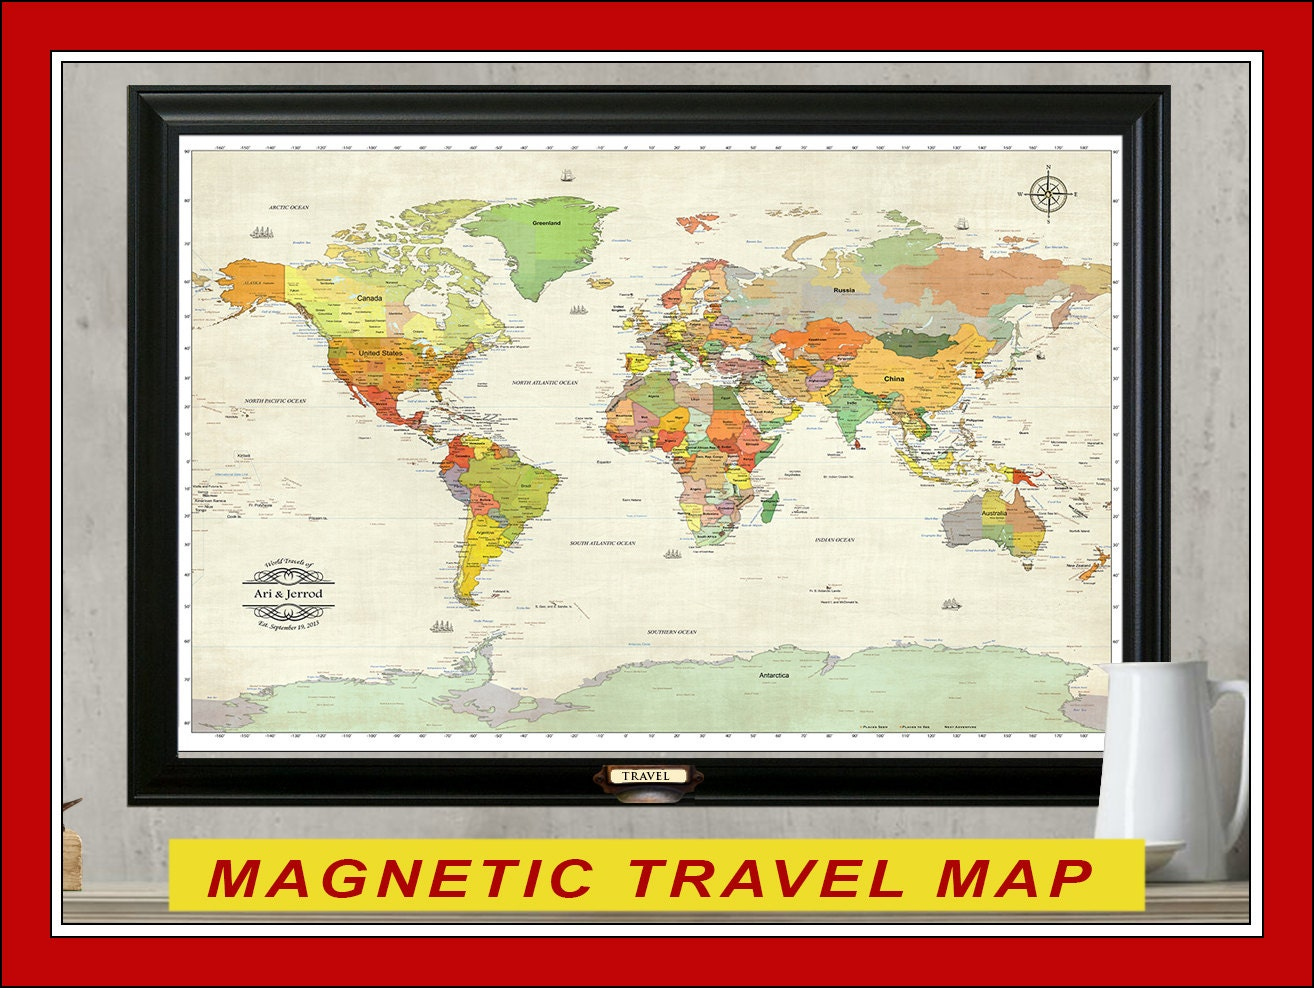 Magnetic Travel Map Personalized Map 24x36 World Travel Map